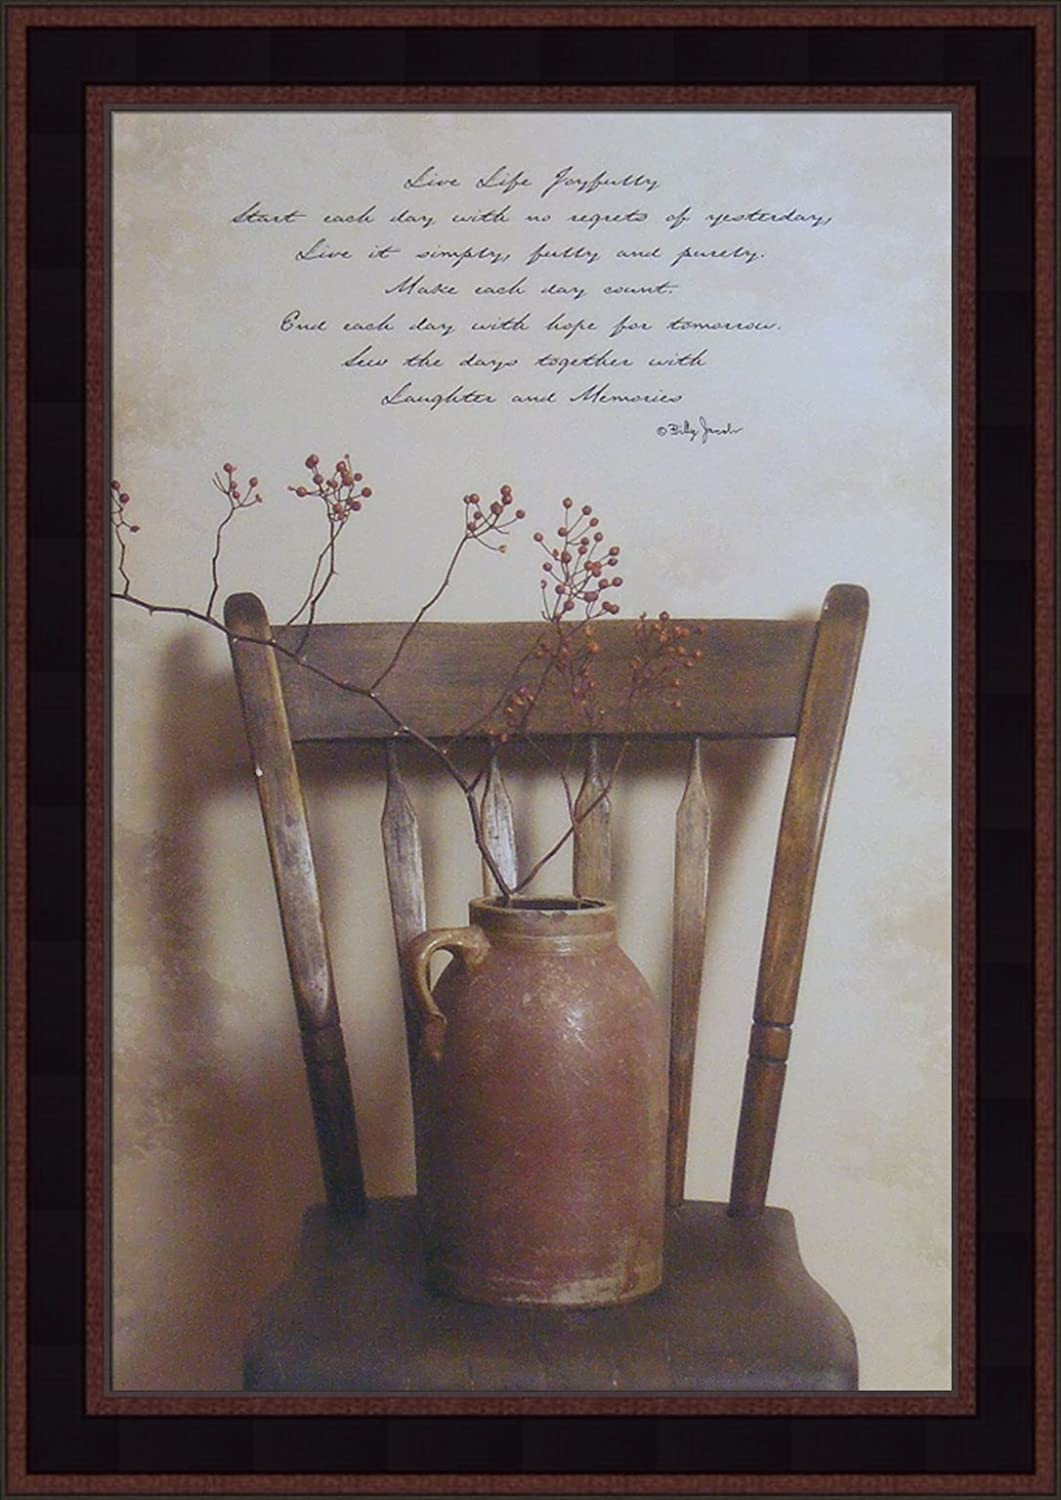 Home Cabin Décor Live Life Joyfully by Billy Jacobs 15x21 Chair Crock Inspirational Primitive Photography Folk Art Framed Print Picture